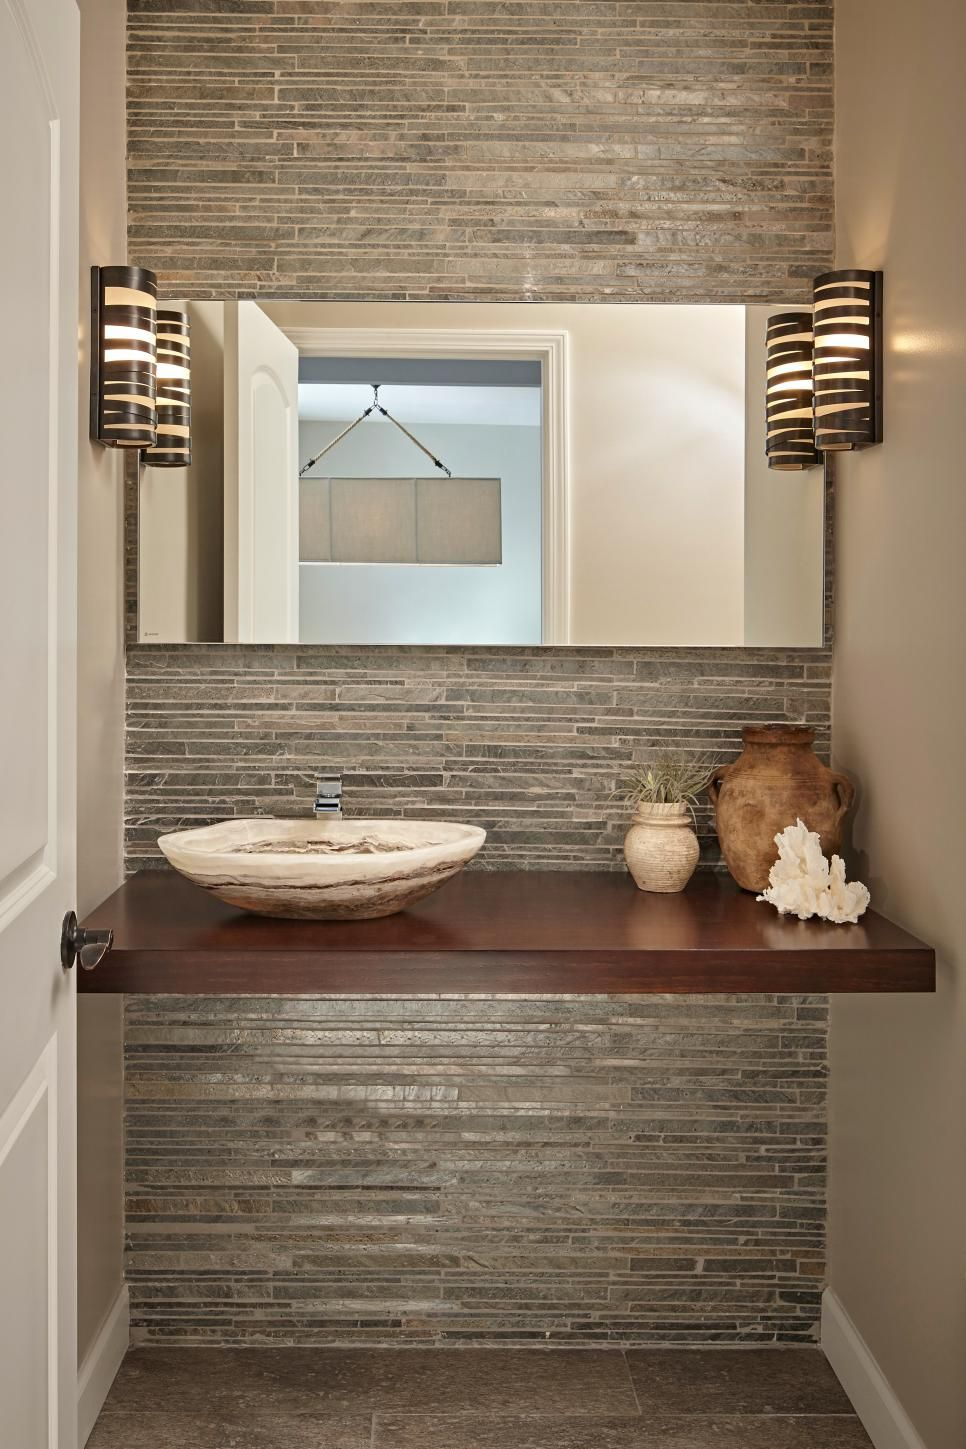 This Powder Room Features Natural Stone Elements Like The